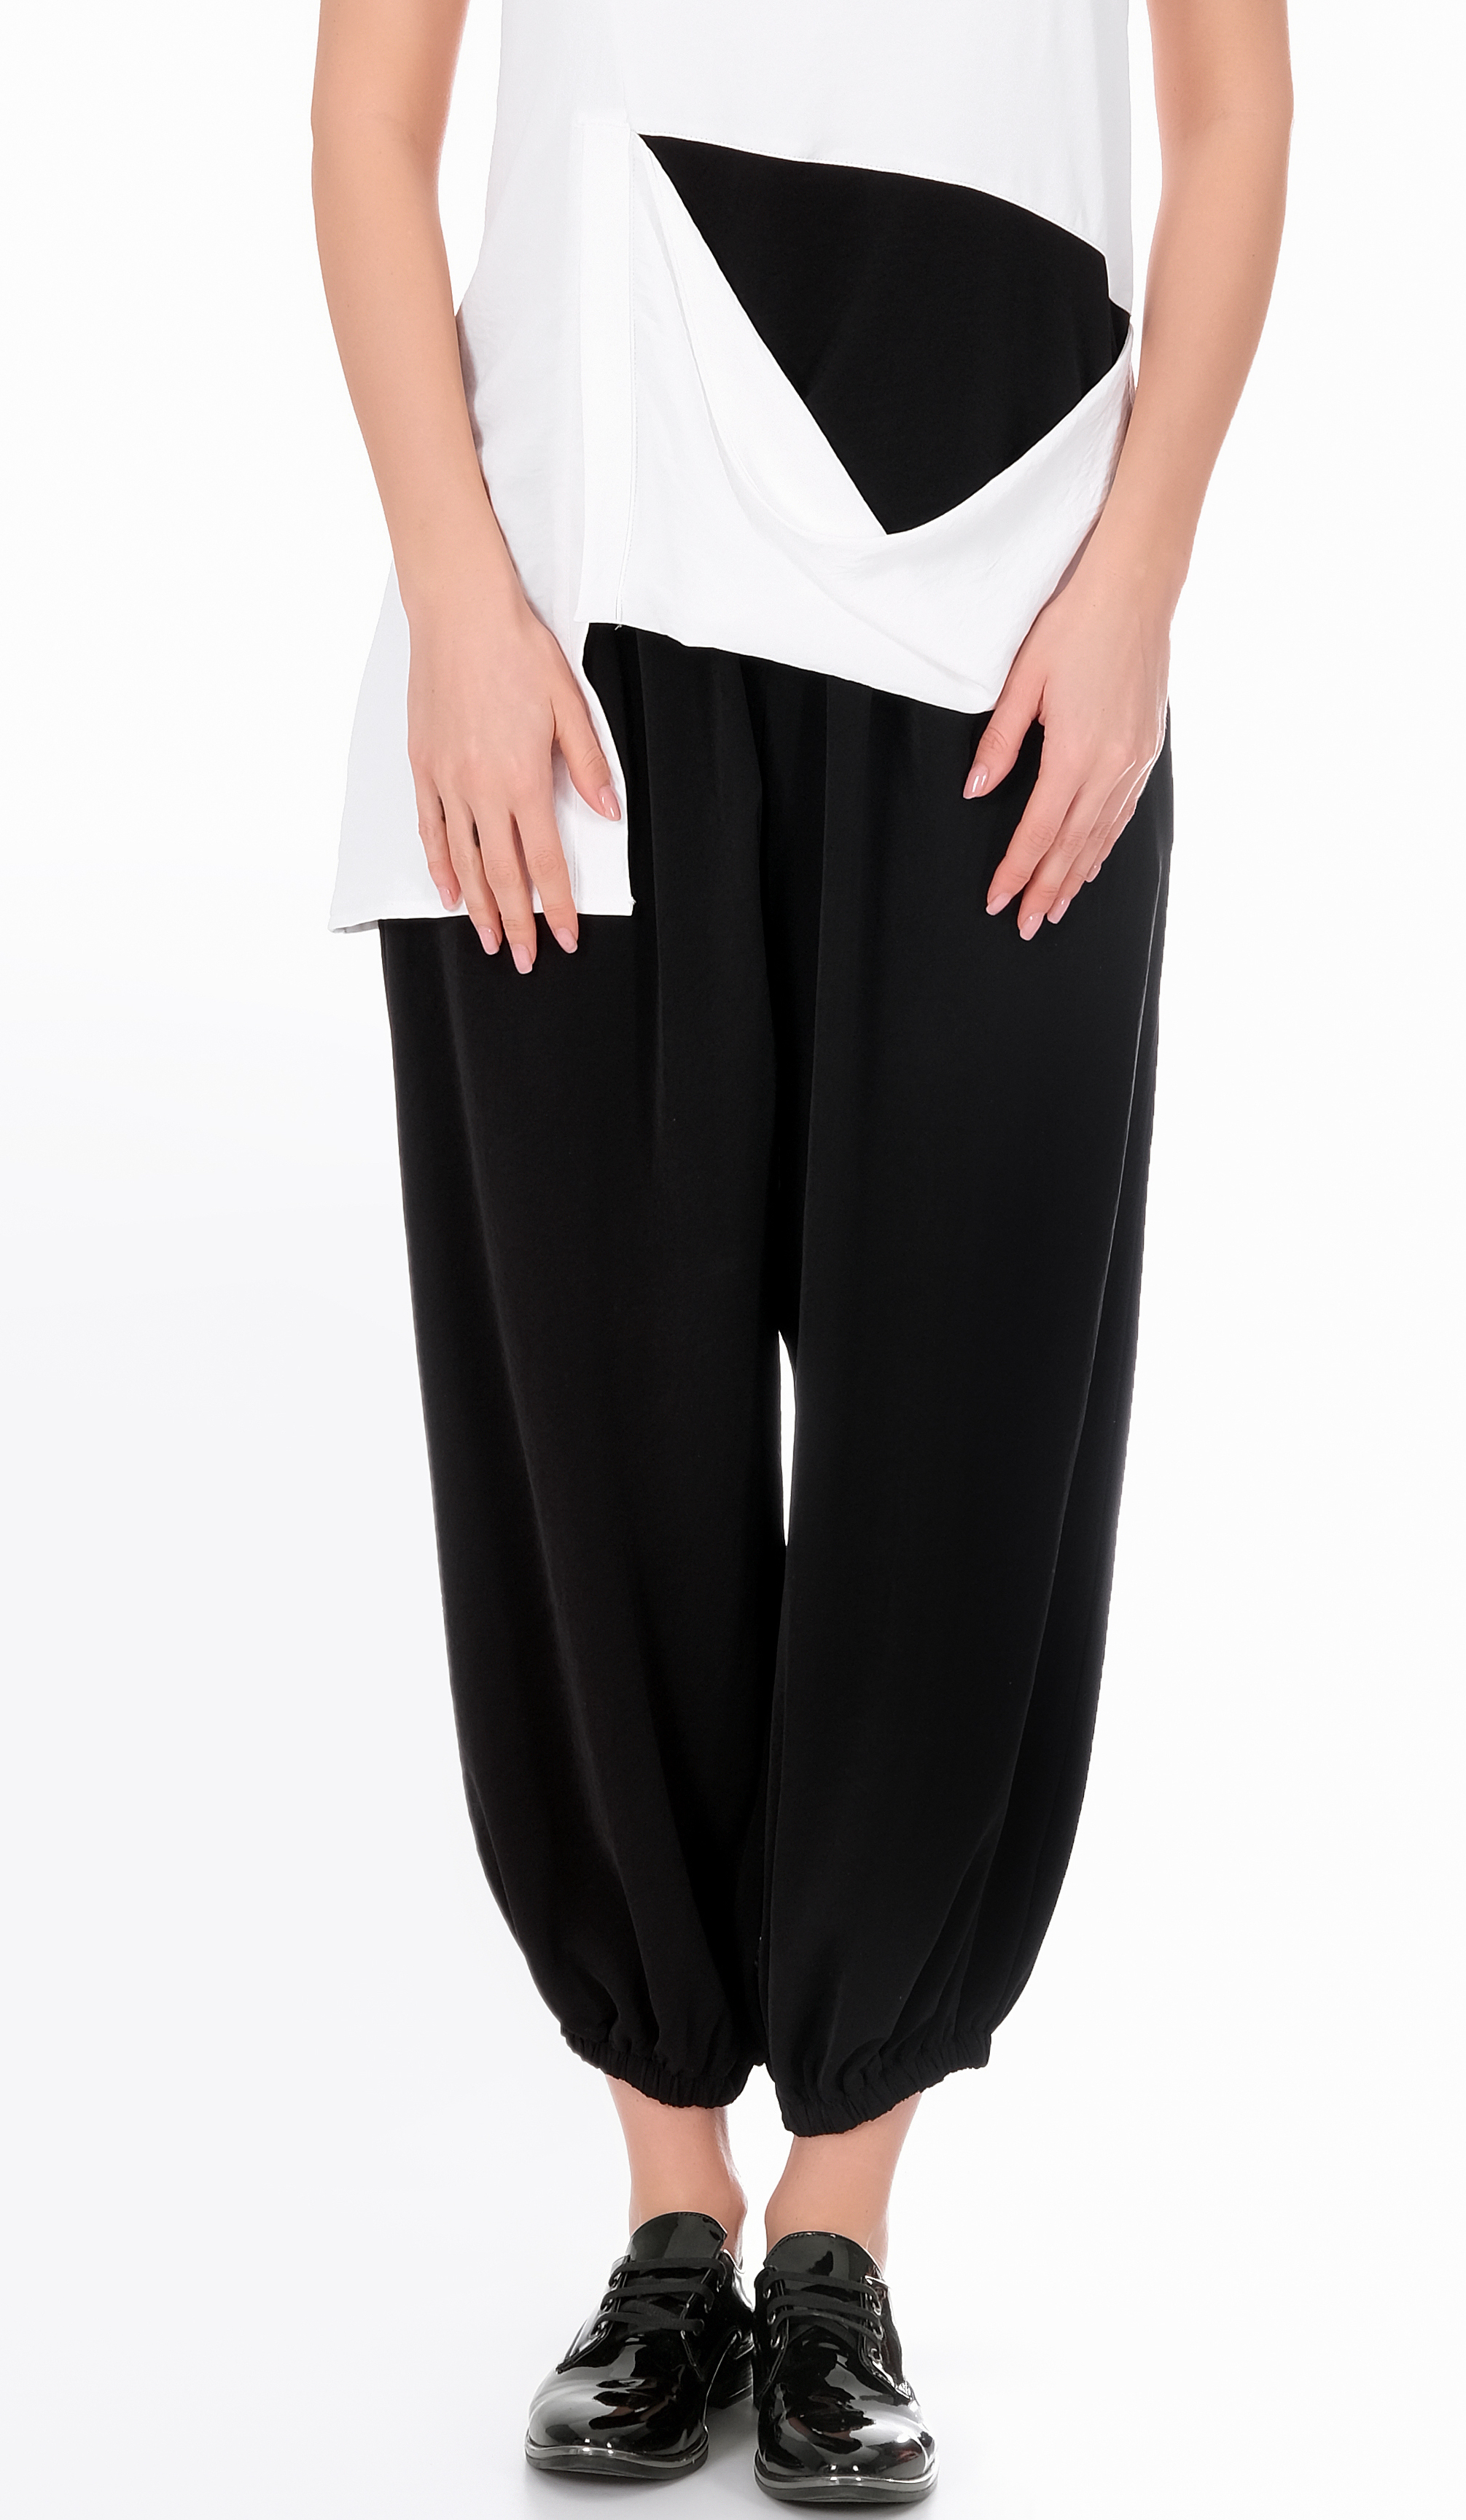 EverSassy: Simply Comfy Wide Leg Pant (2 Left!) EverSassy_61119